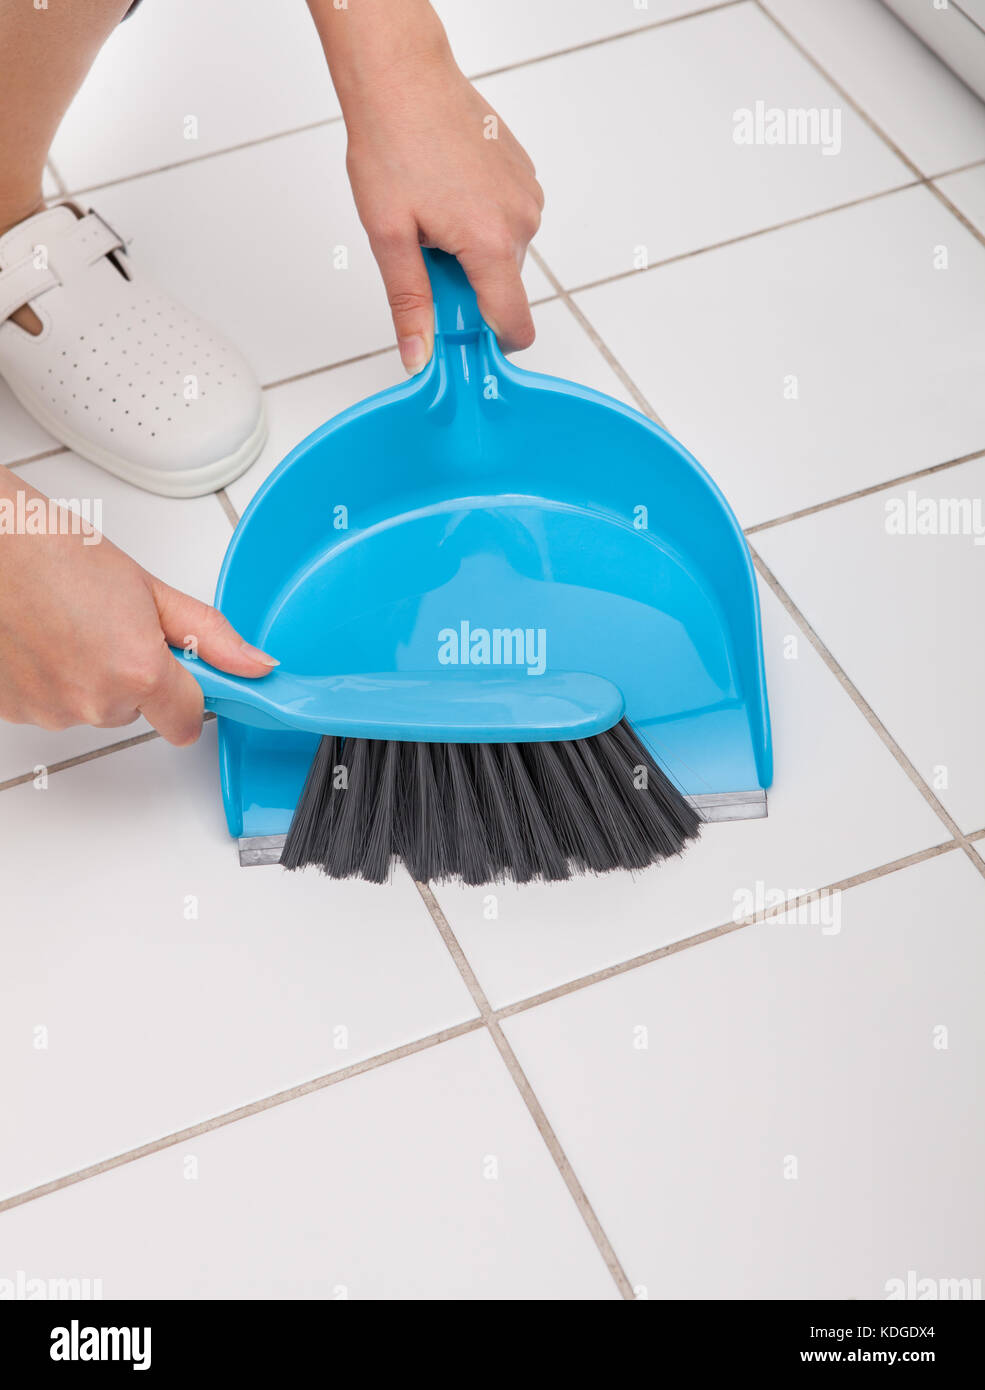 scoop for cleaning stock photos